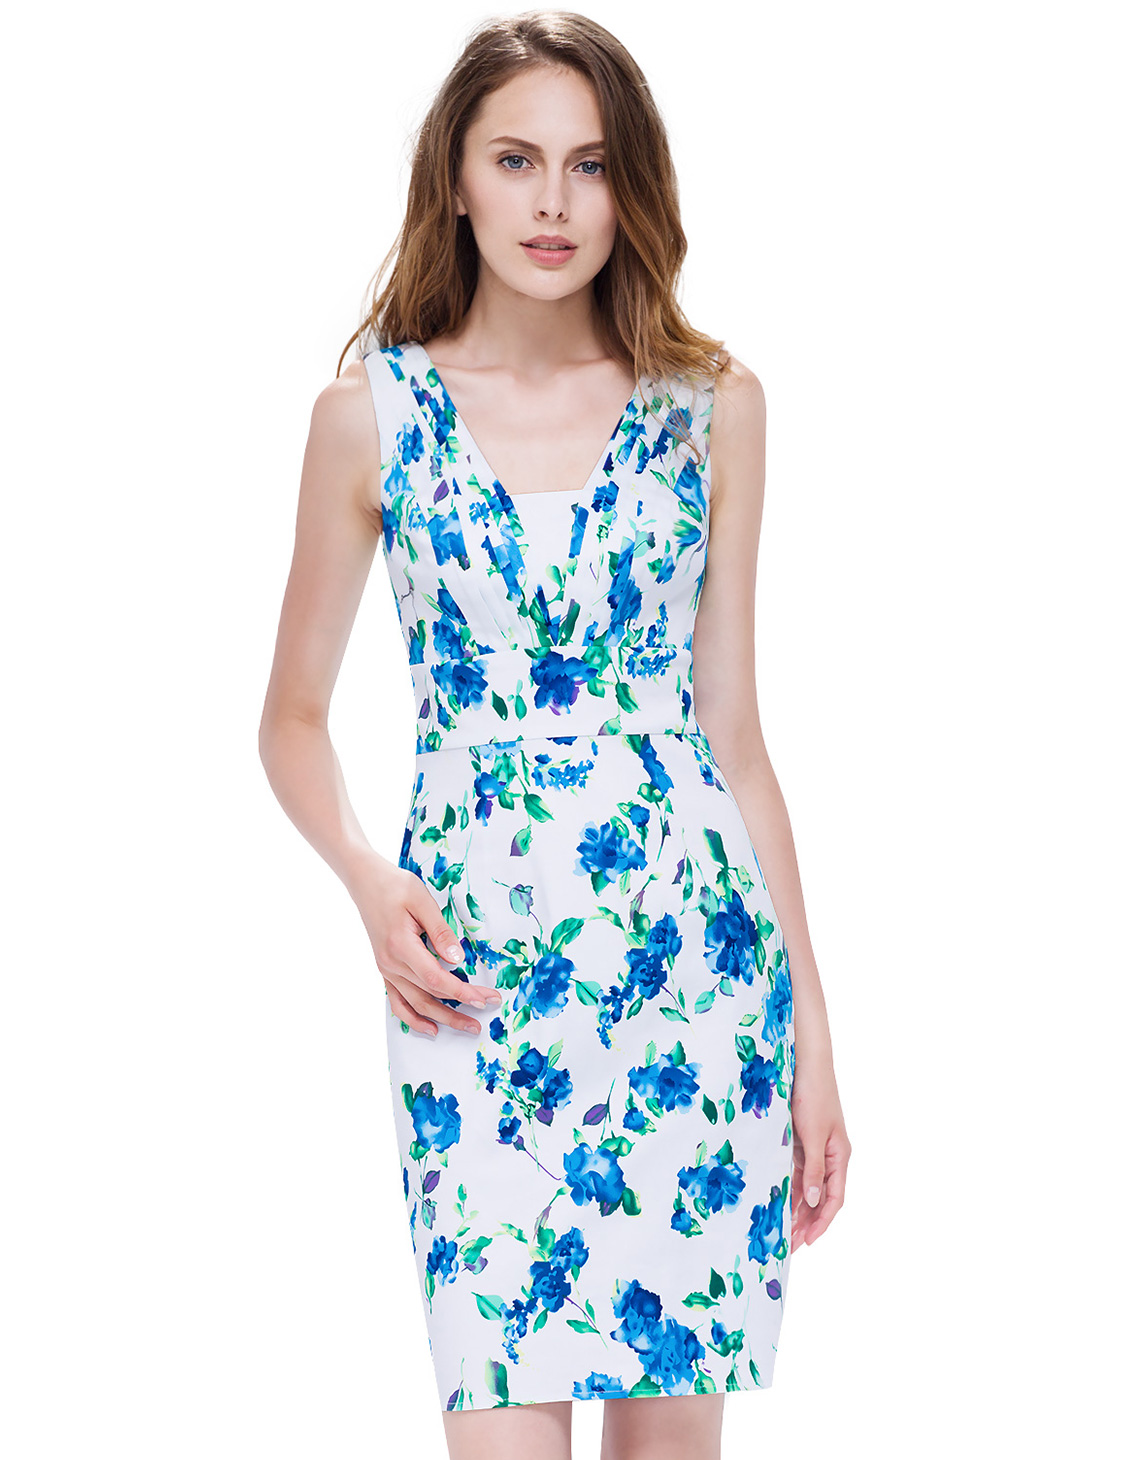 Alisa Pan Women Bodycon Short Cocktail Dress Floral Printed Party ...